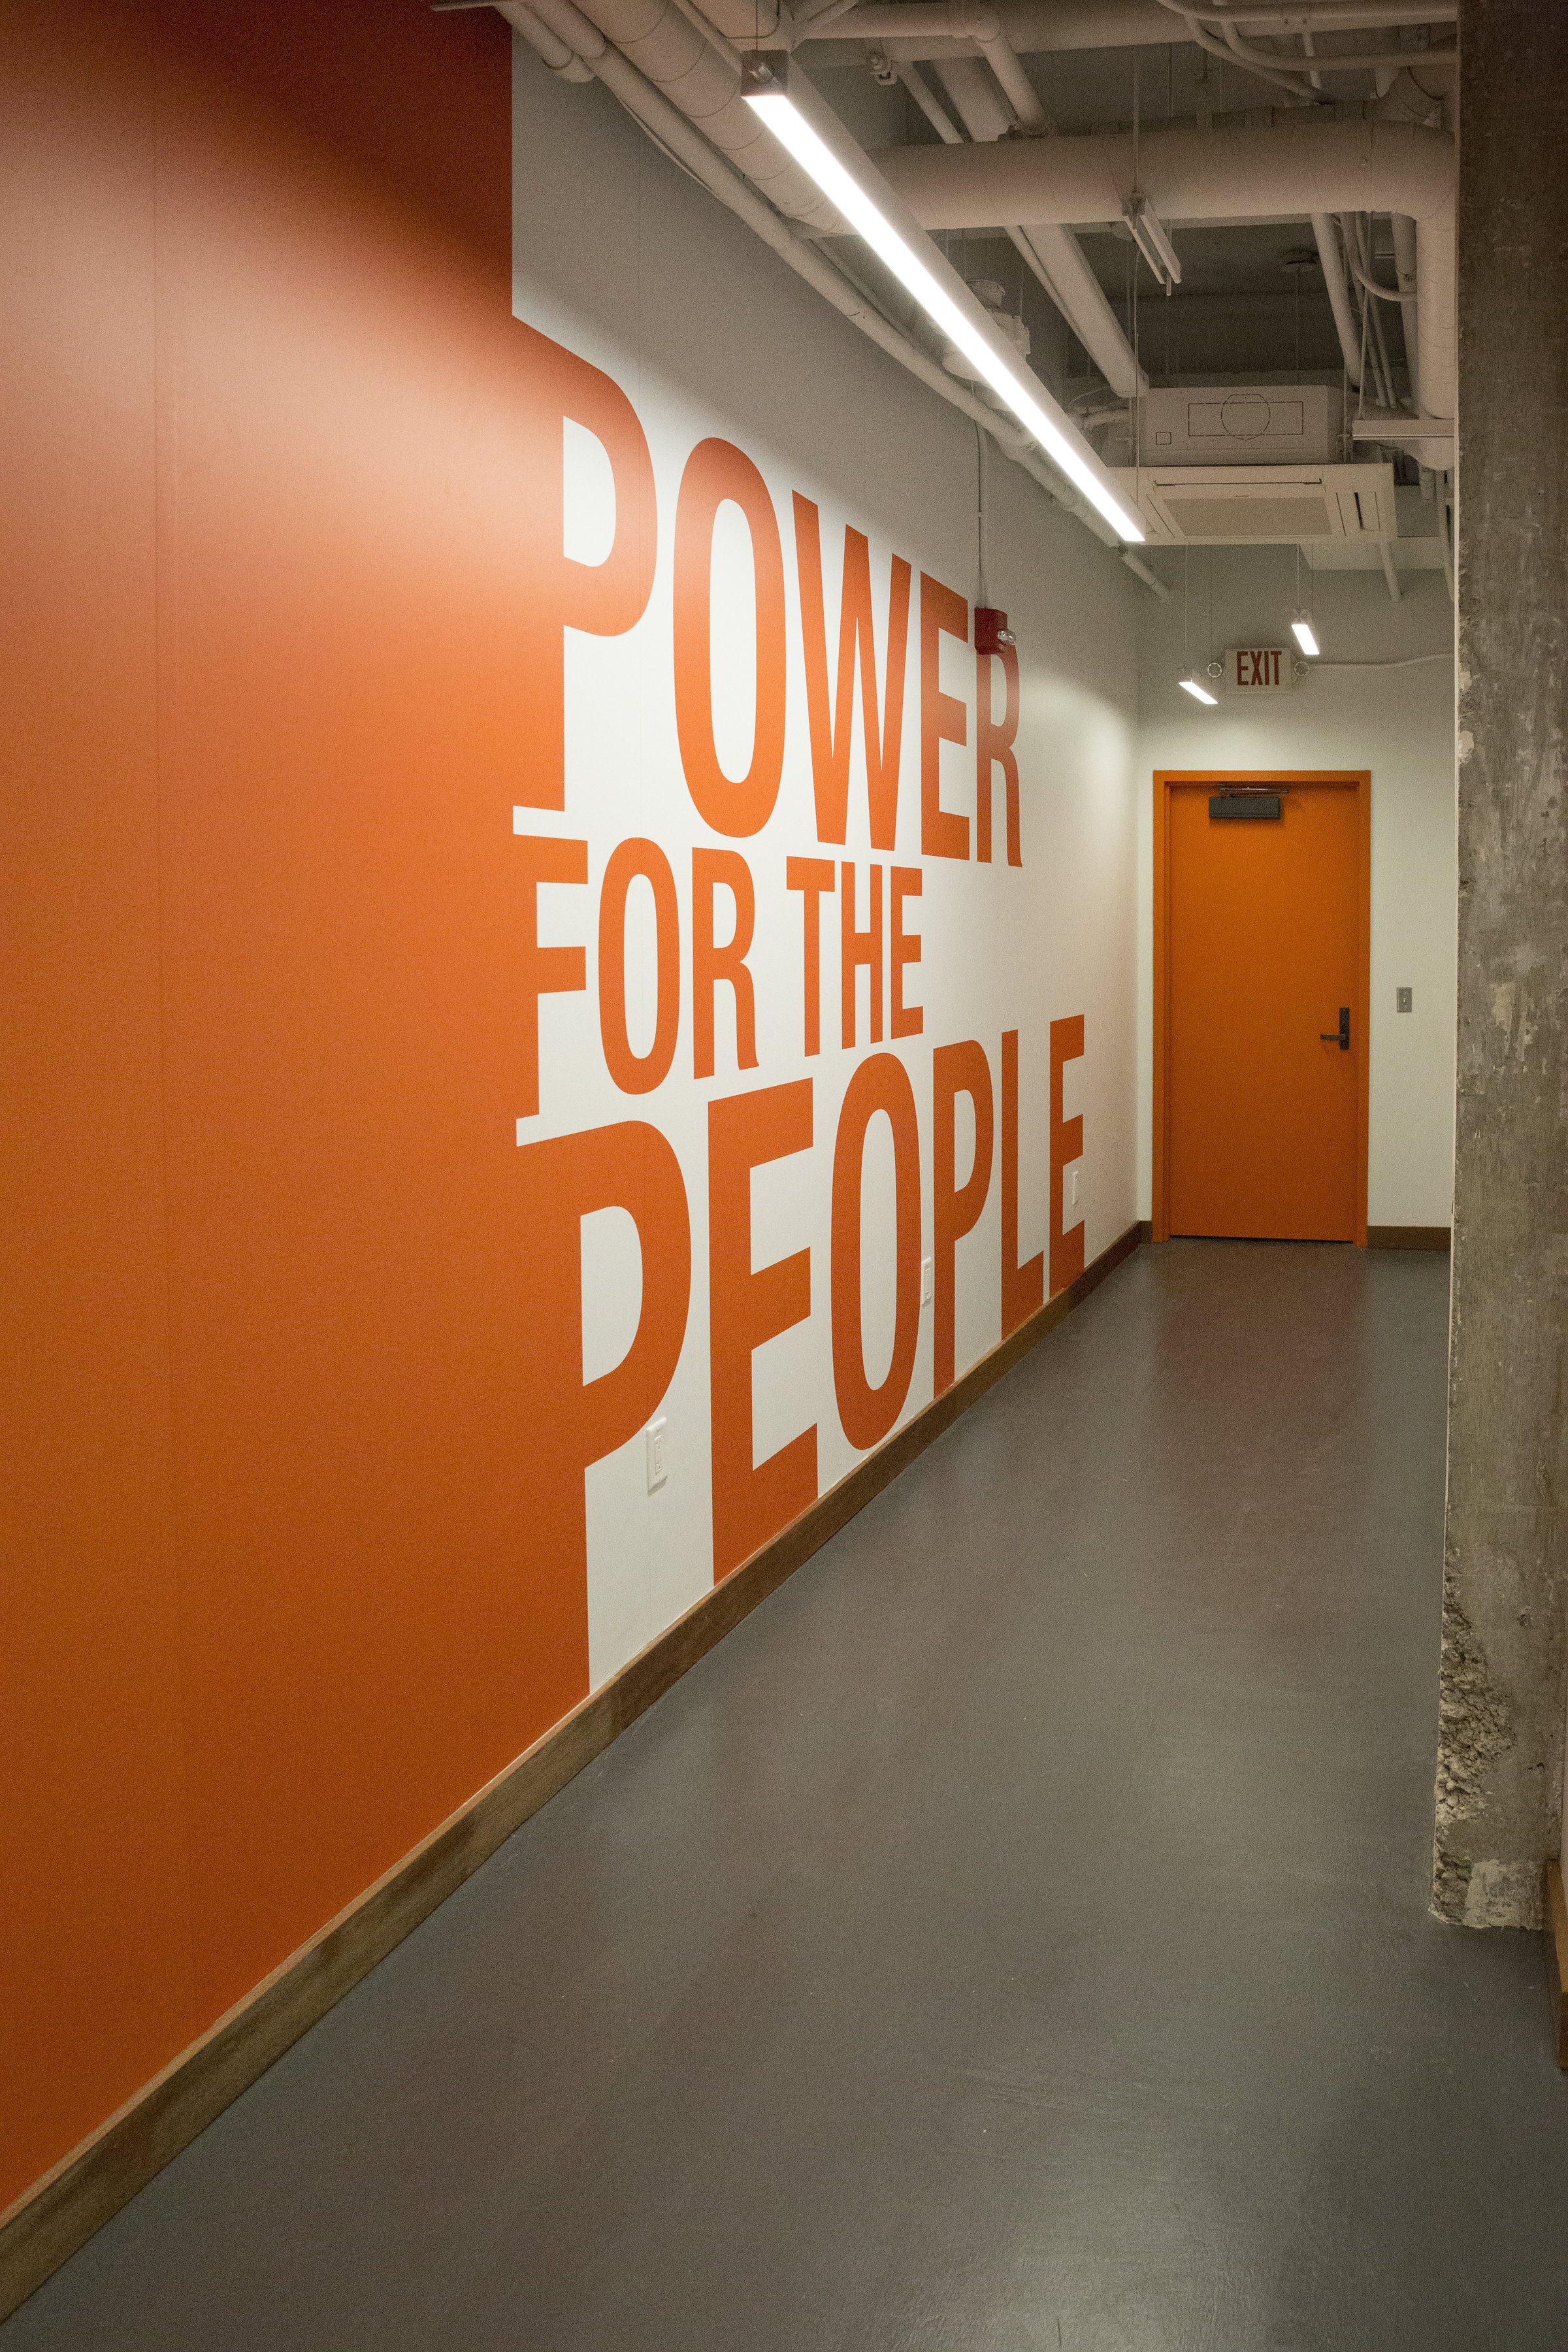 RevoluSun Smart Home Innovation Center Showroom - Power for the People